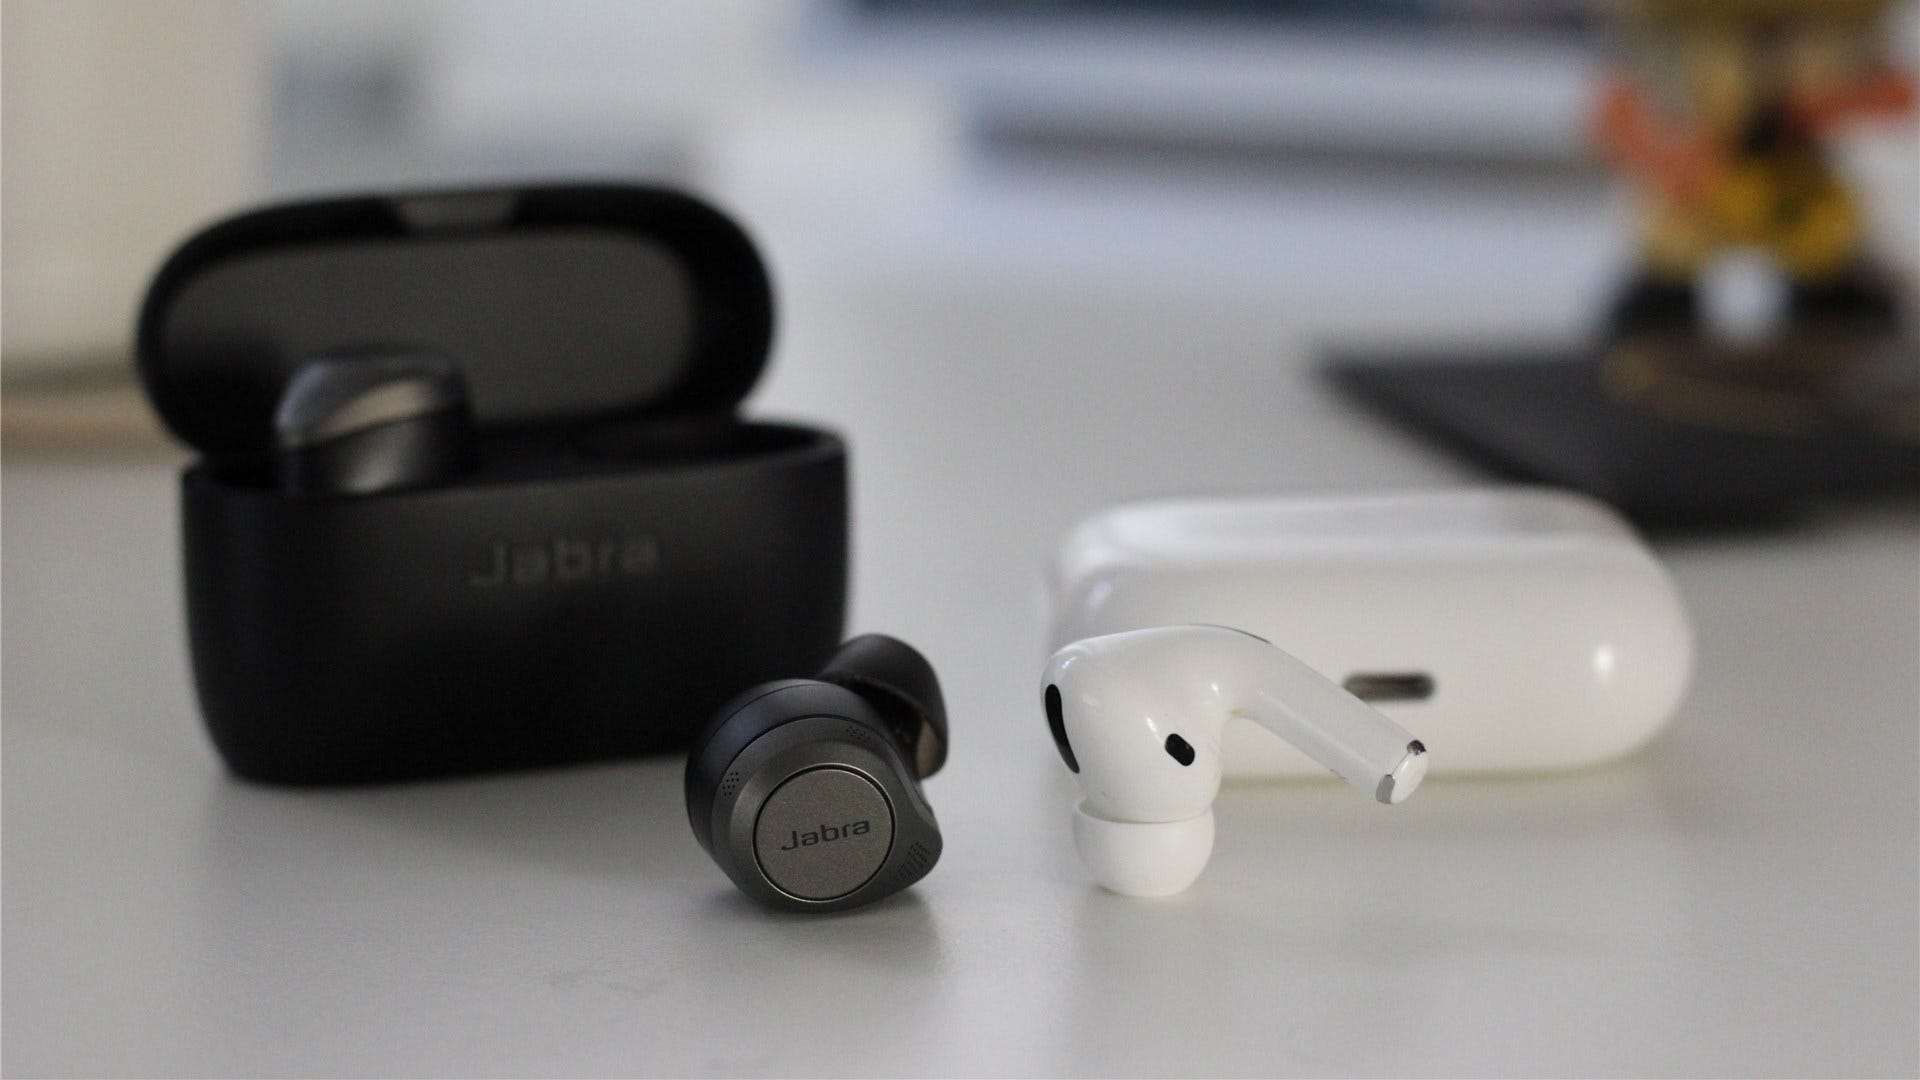 The Jabra Elite 85t compared to the AirPods Pro